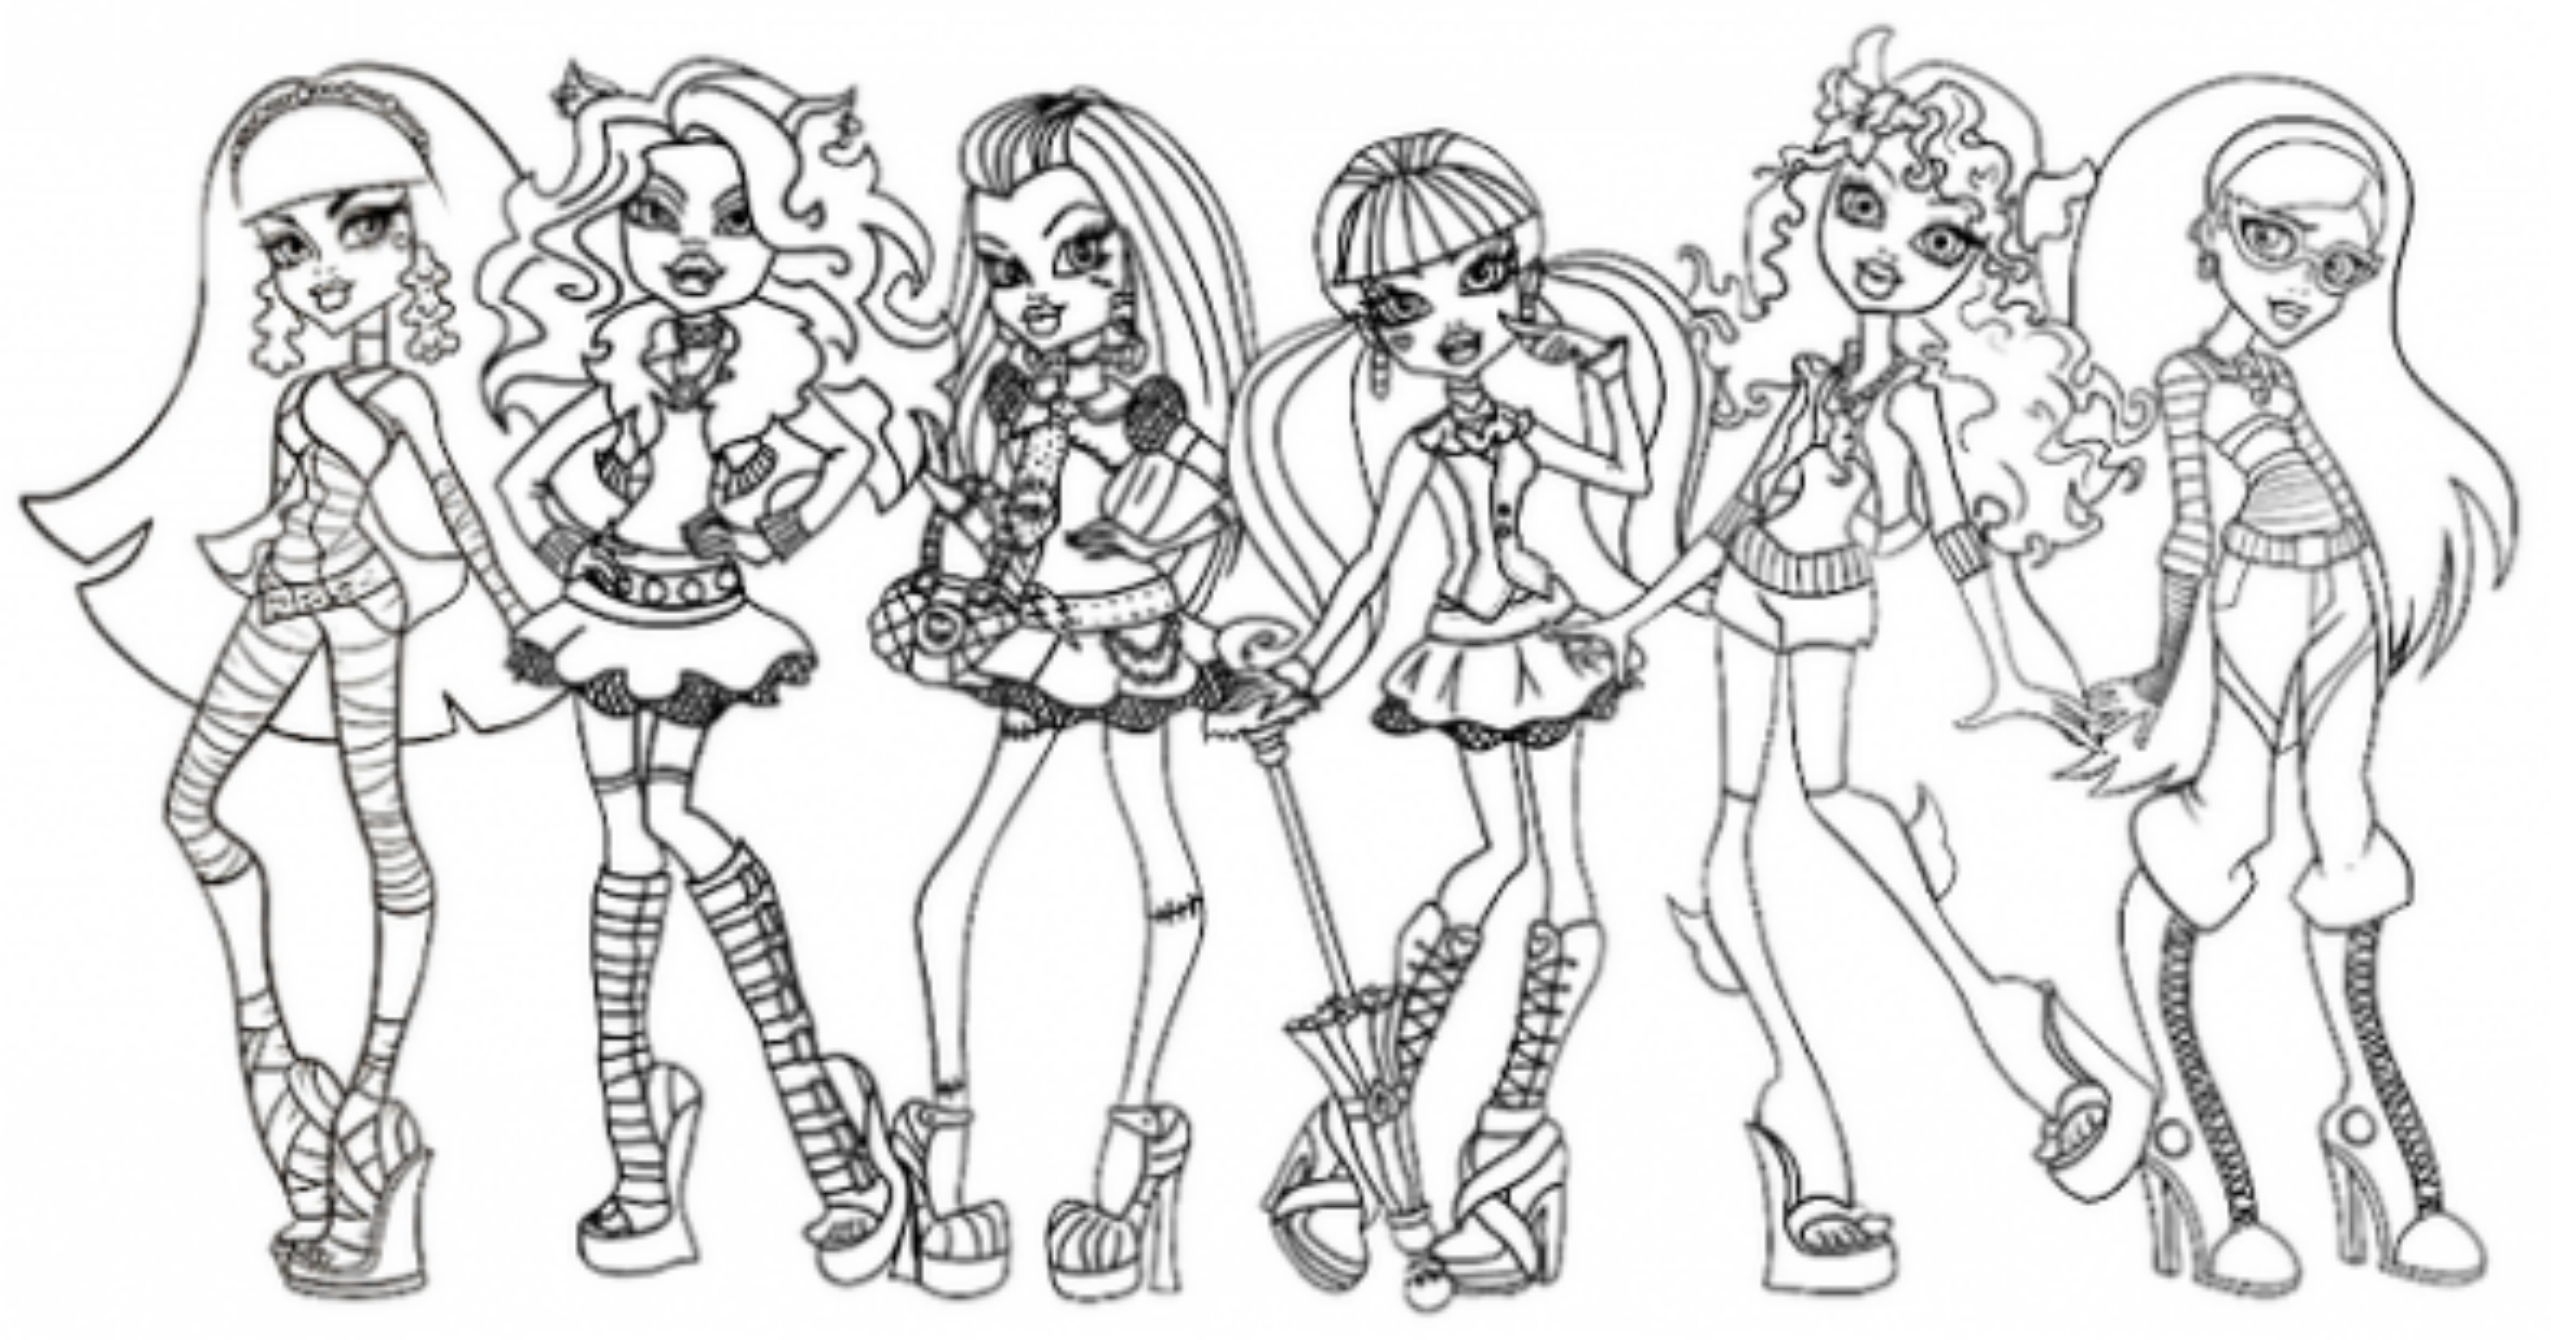 Monster High Coloring Page All Characters Printable Monster High Download Of Exquisite Monster High Printables Coloring Pages Free Gallery